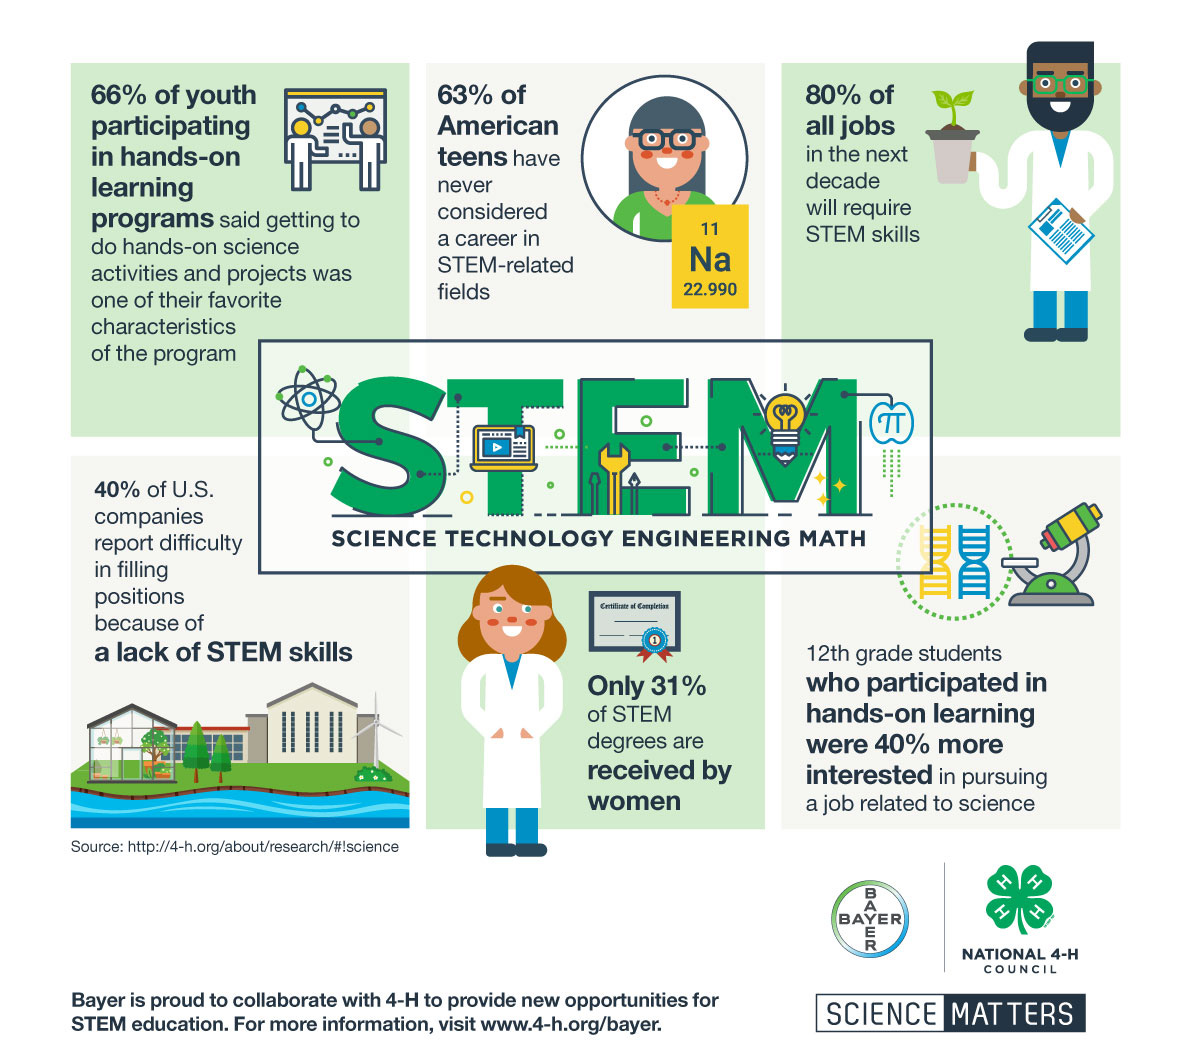 Stem Programs For Teens: Bayer, 4-H To Grow Tomorrow's Science Leaders